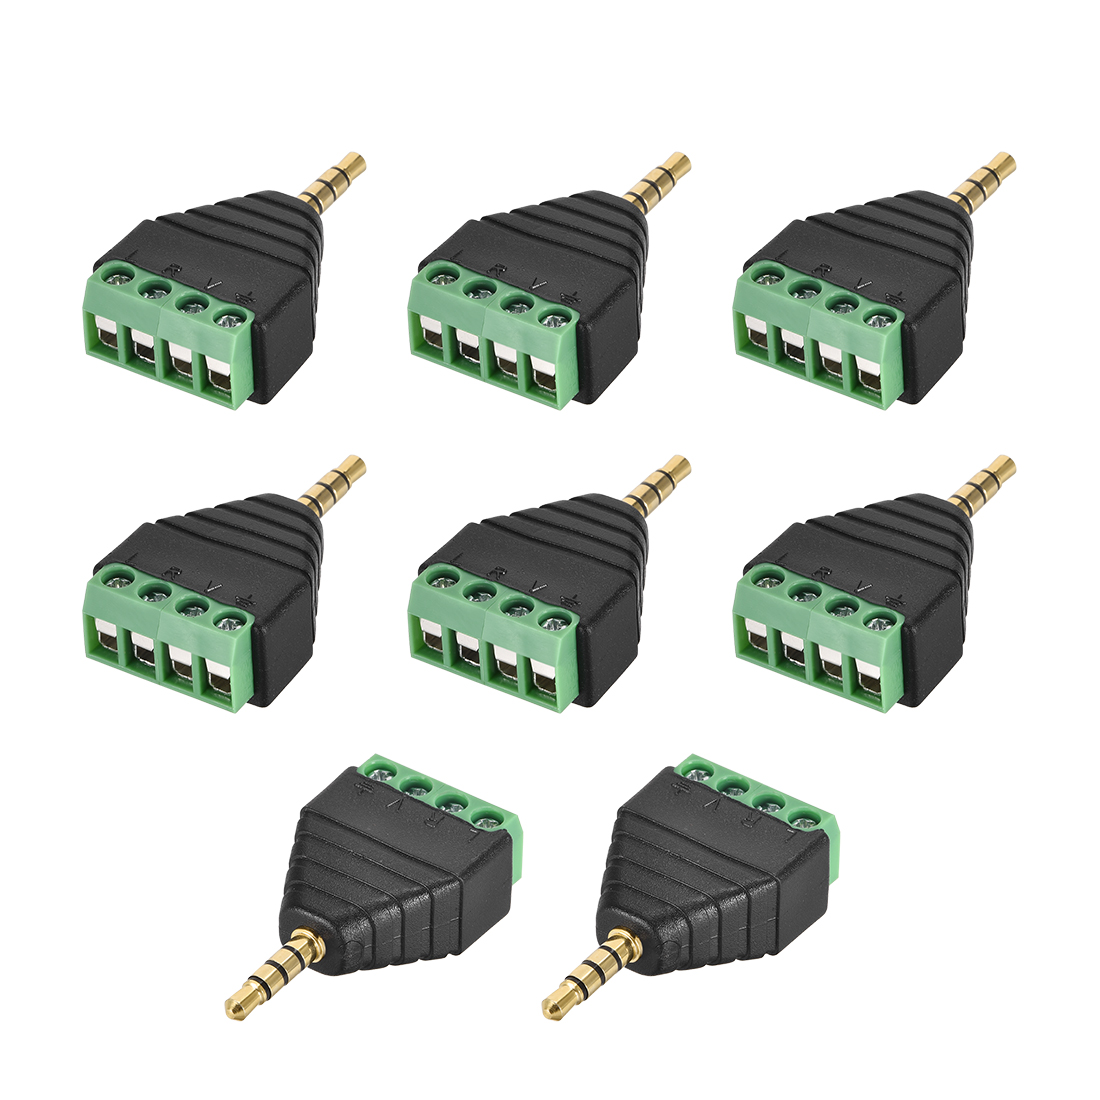 3.5mm 4 Pole Male to AV 4 Screw Terminal Audio Video Connector Adapter 8pcs